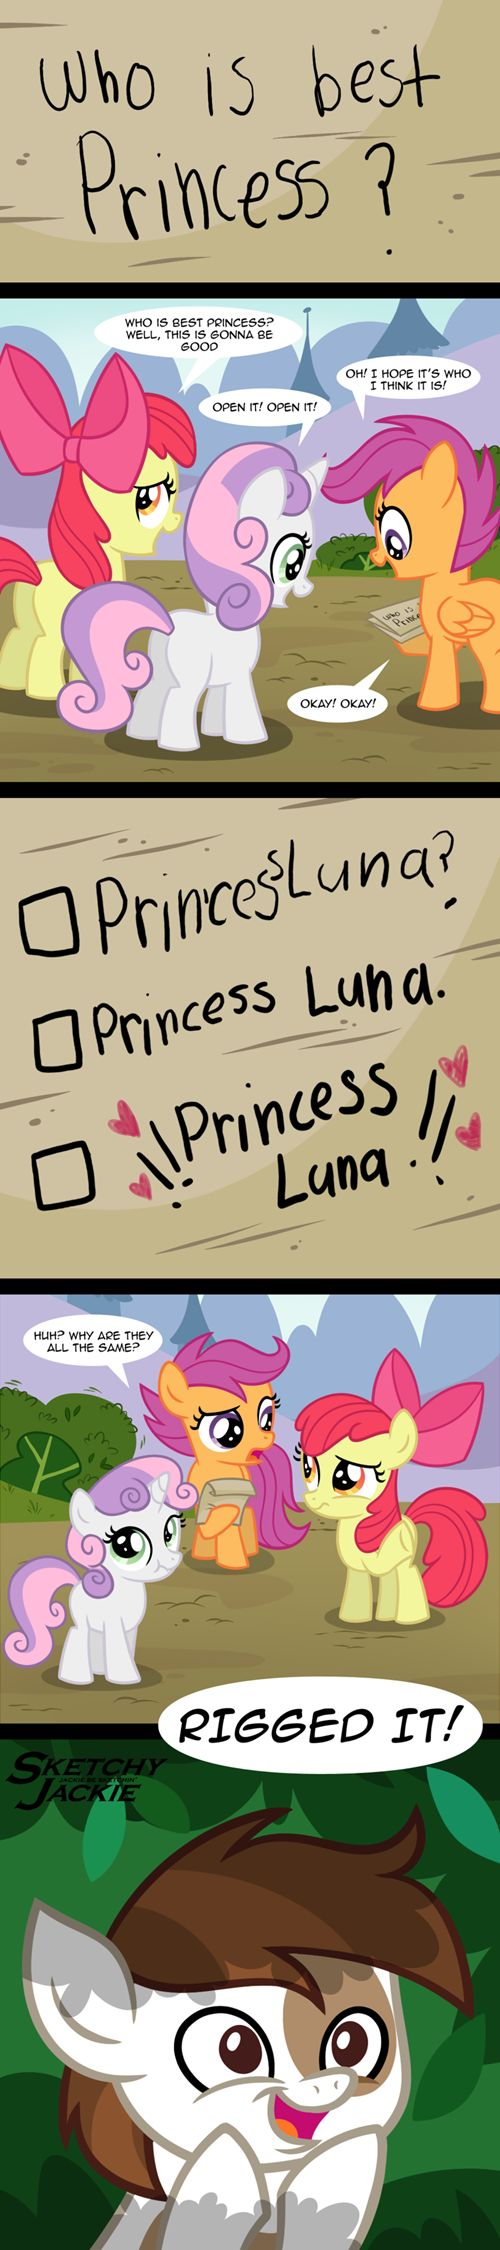 The references are real.  Boy (cutie mark crusaders) Mabel (Pipsqueak) #Gravity Falls